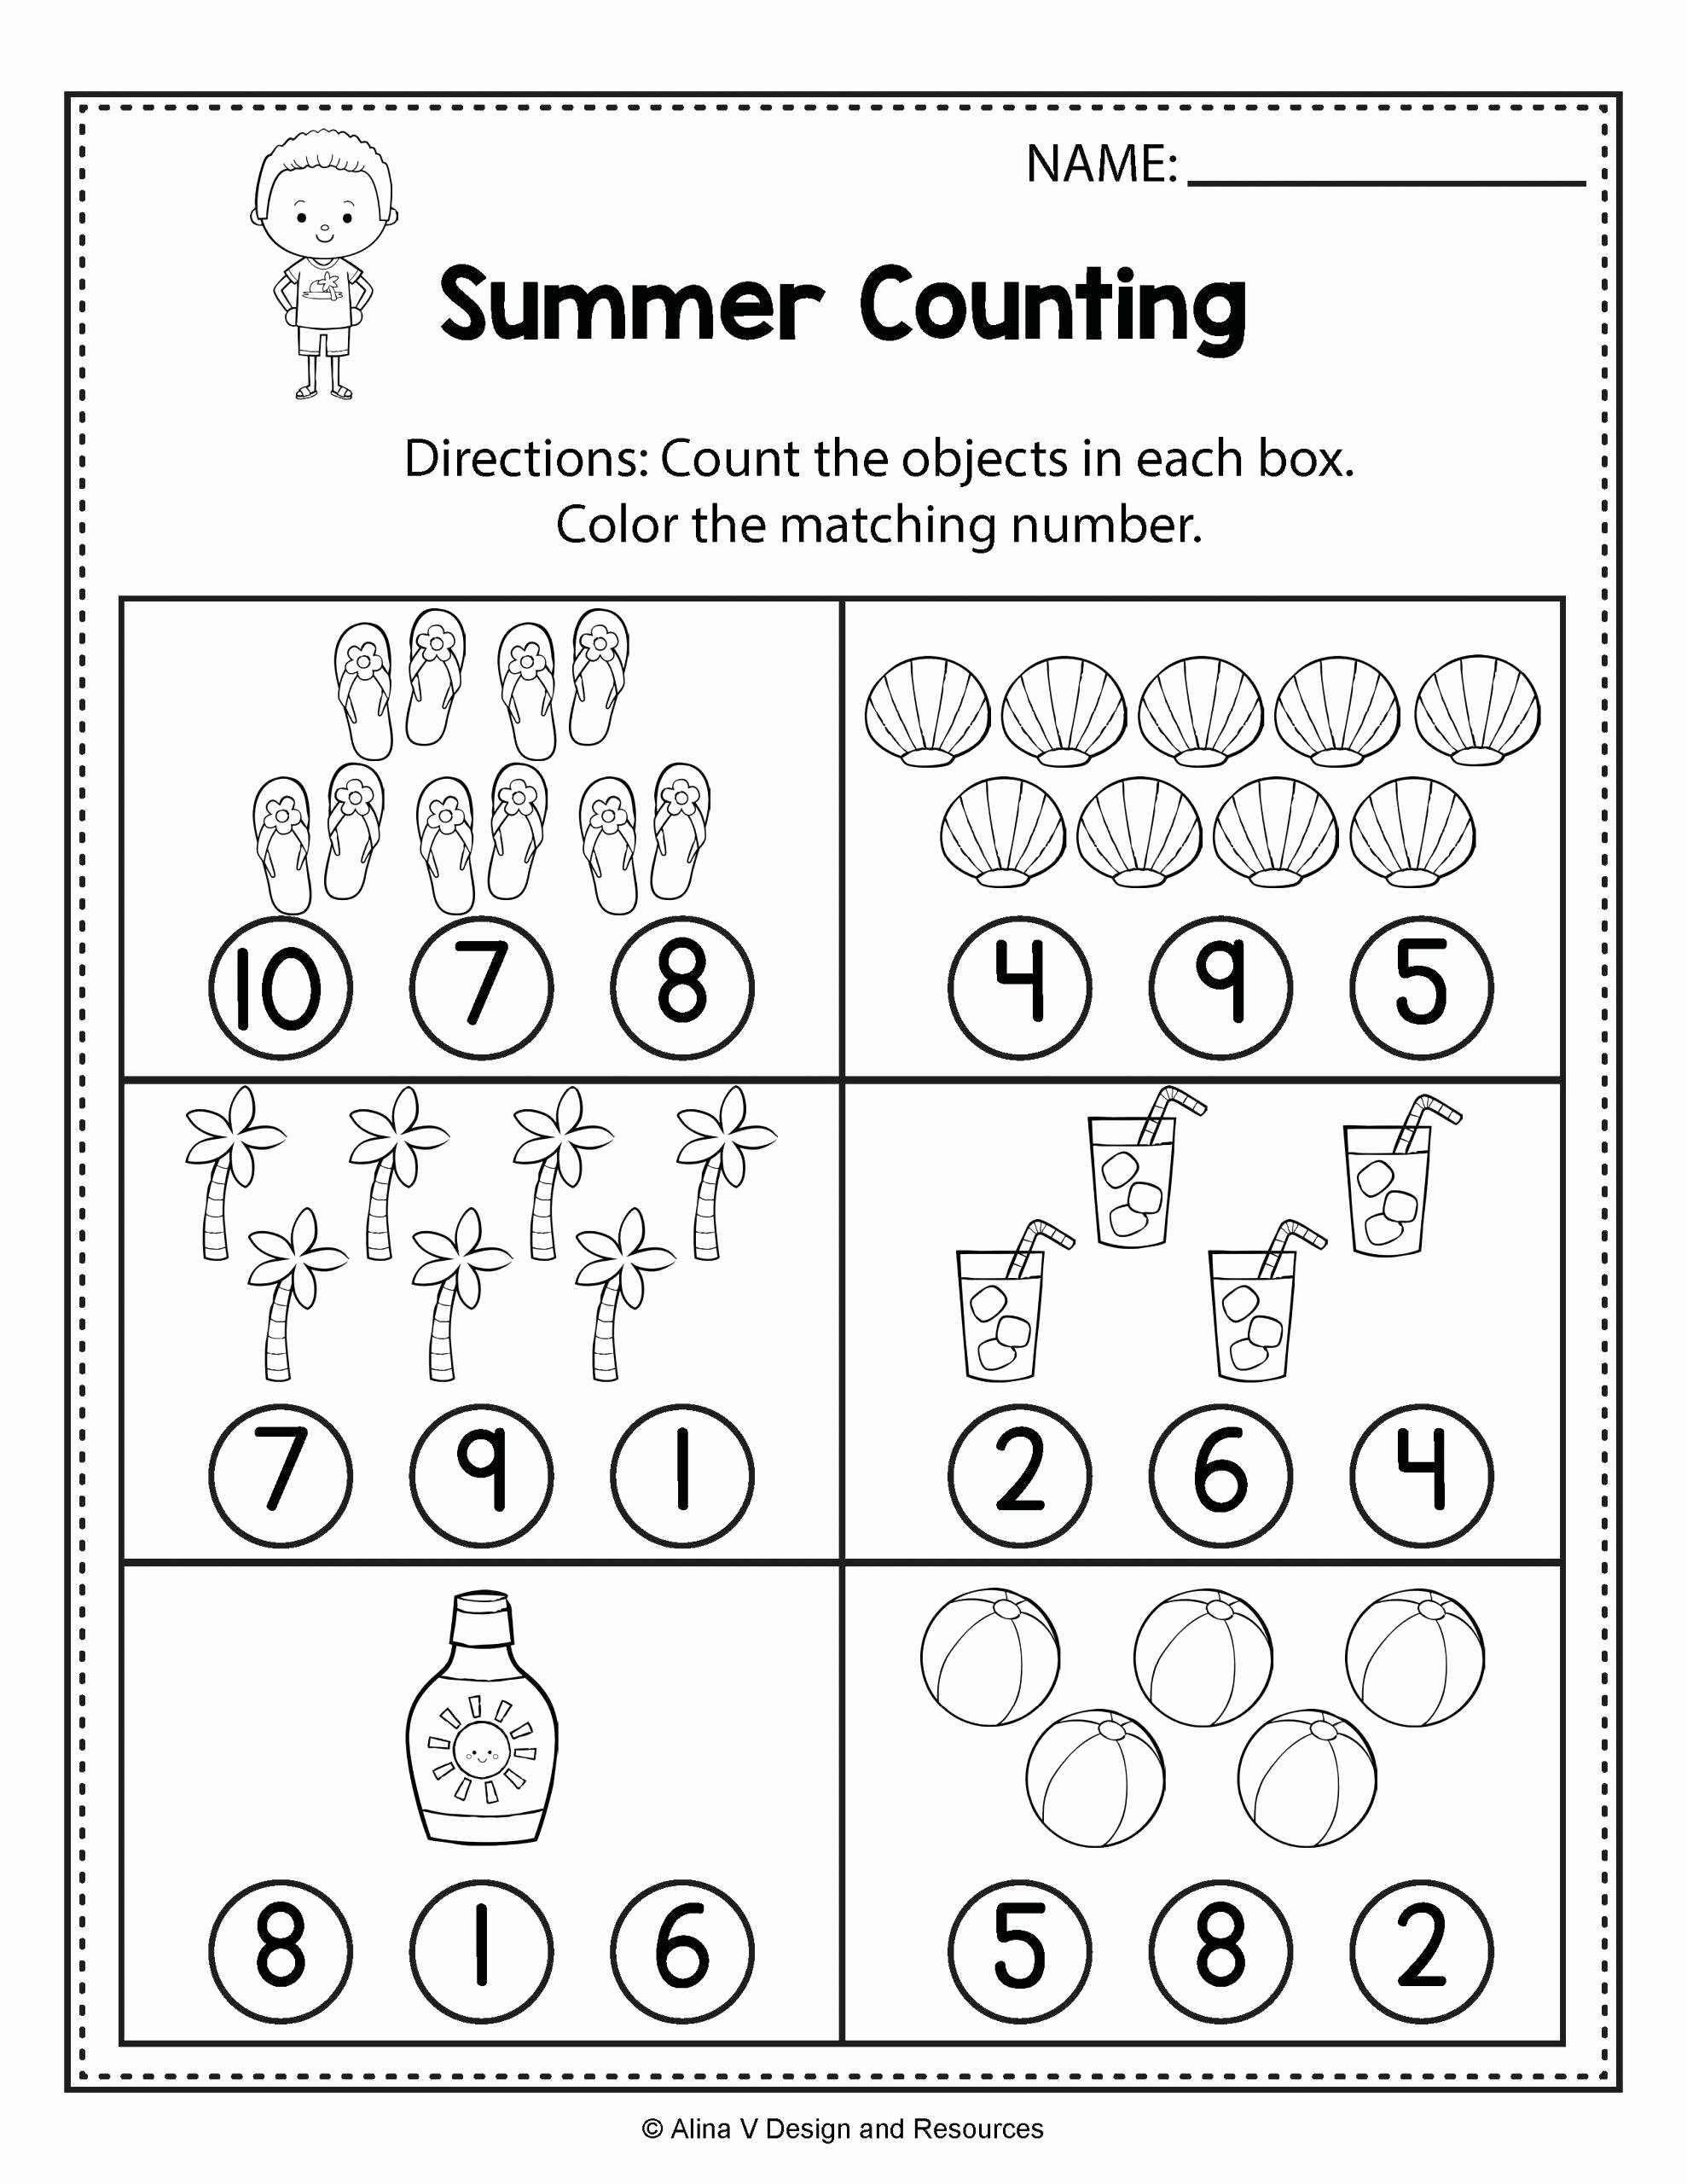 Worksheets for Preschoolers About Numbers Ideas Worksheets Printable Preschool Worksheets Number